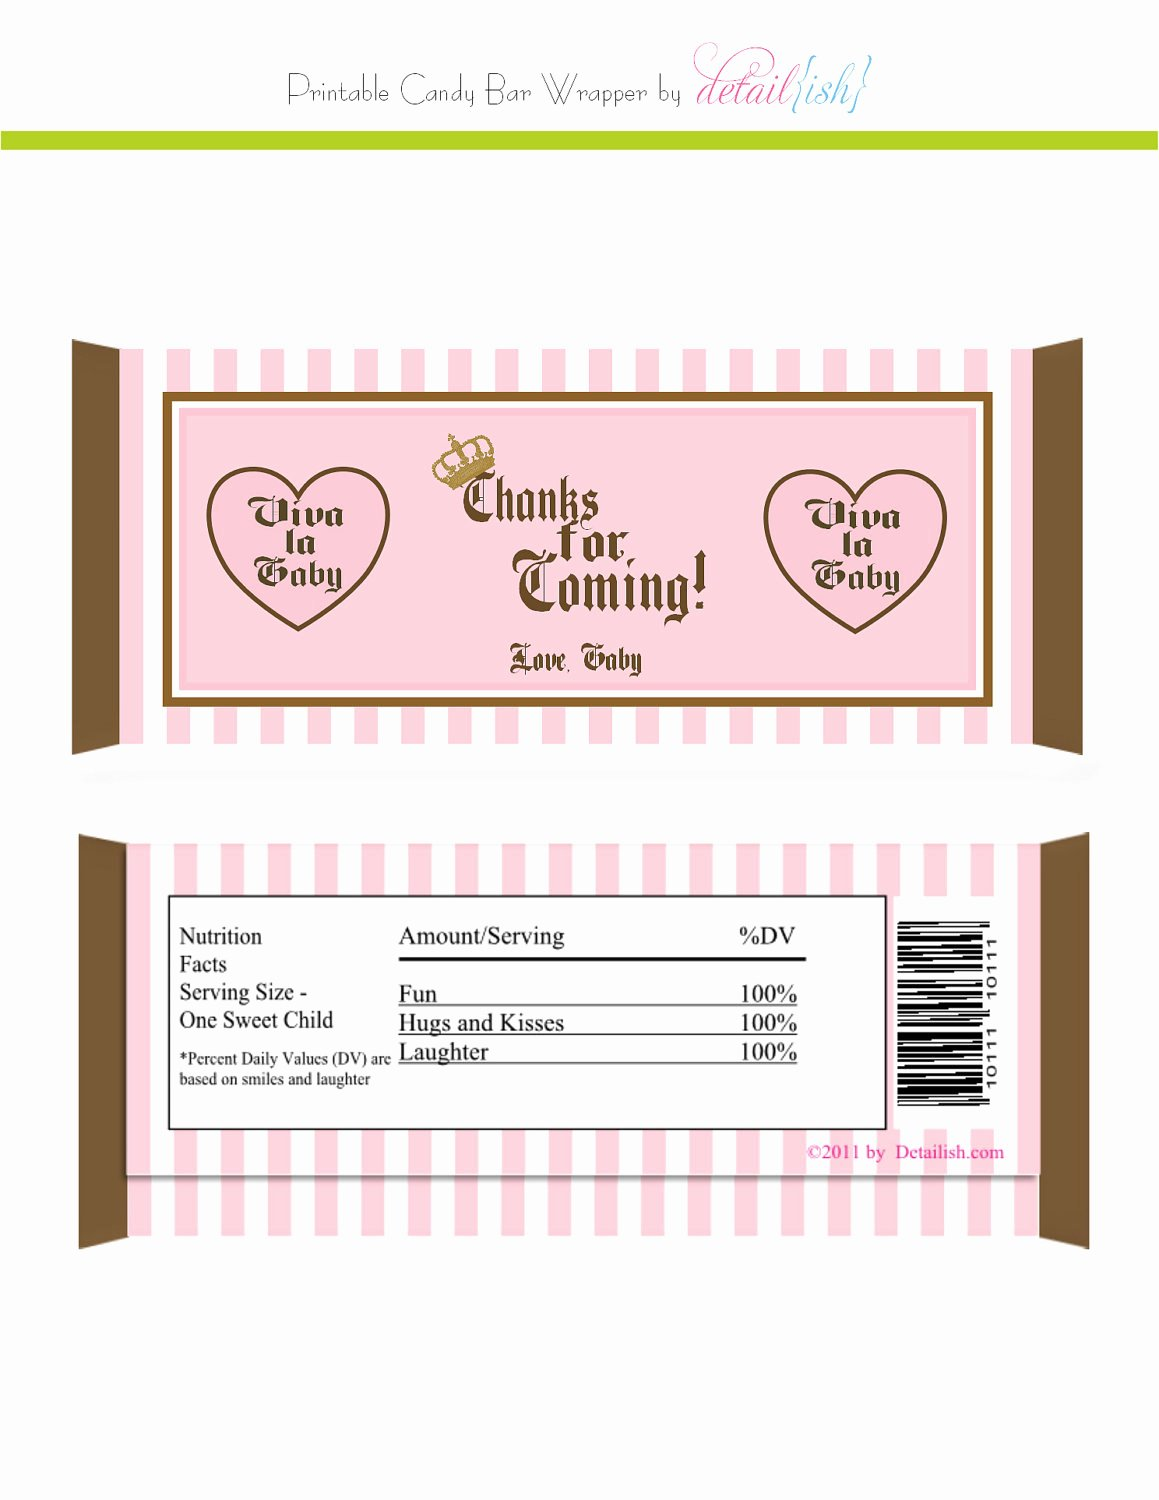 Free Candy Wrapper Template Lovely Items Similar to Juicy Couture Inspired Candy Bar Wrapper